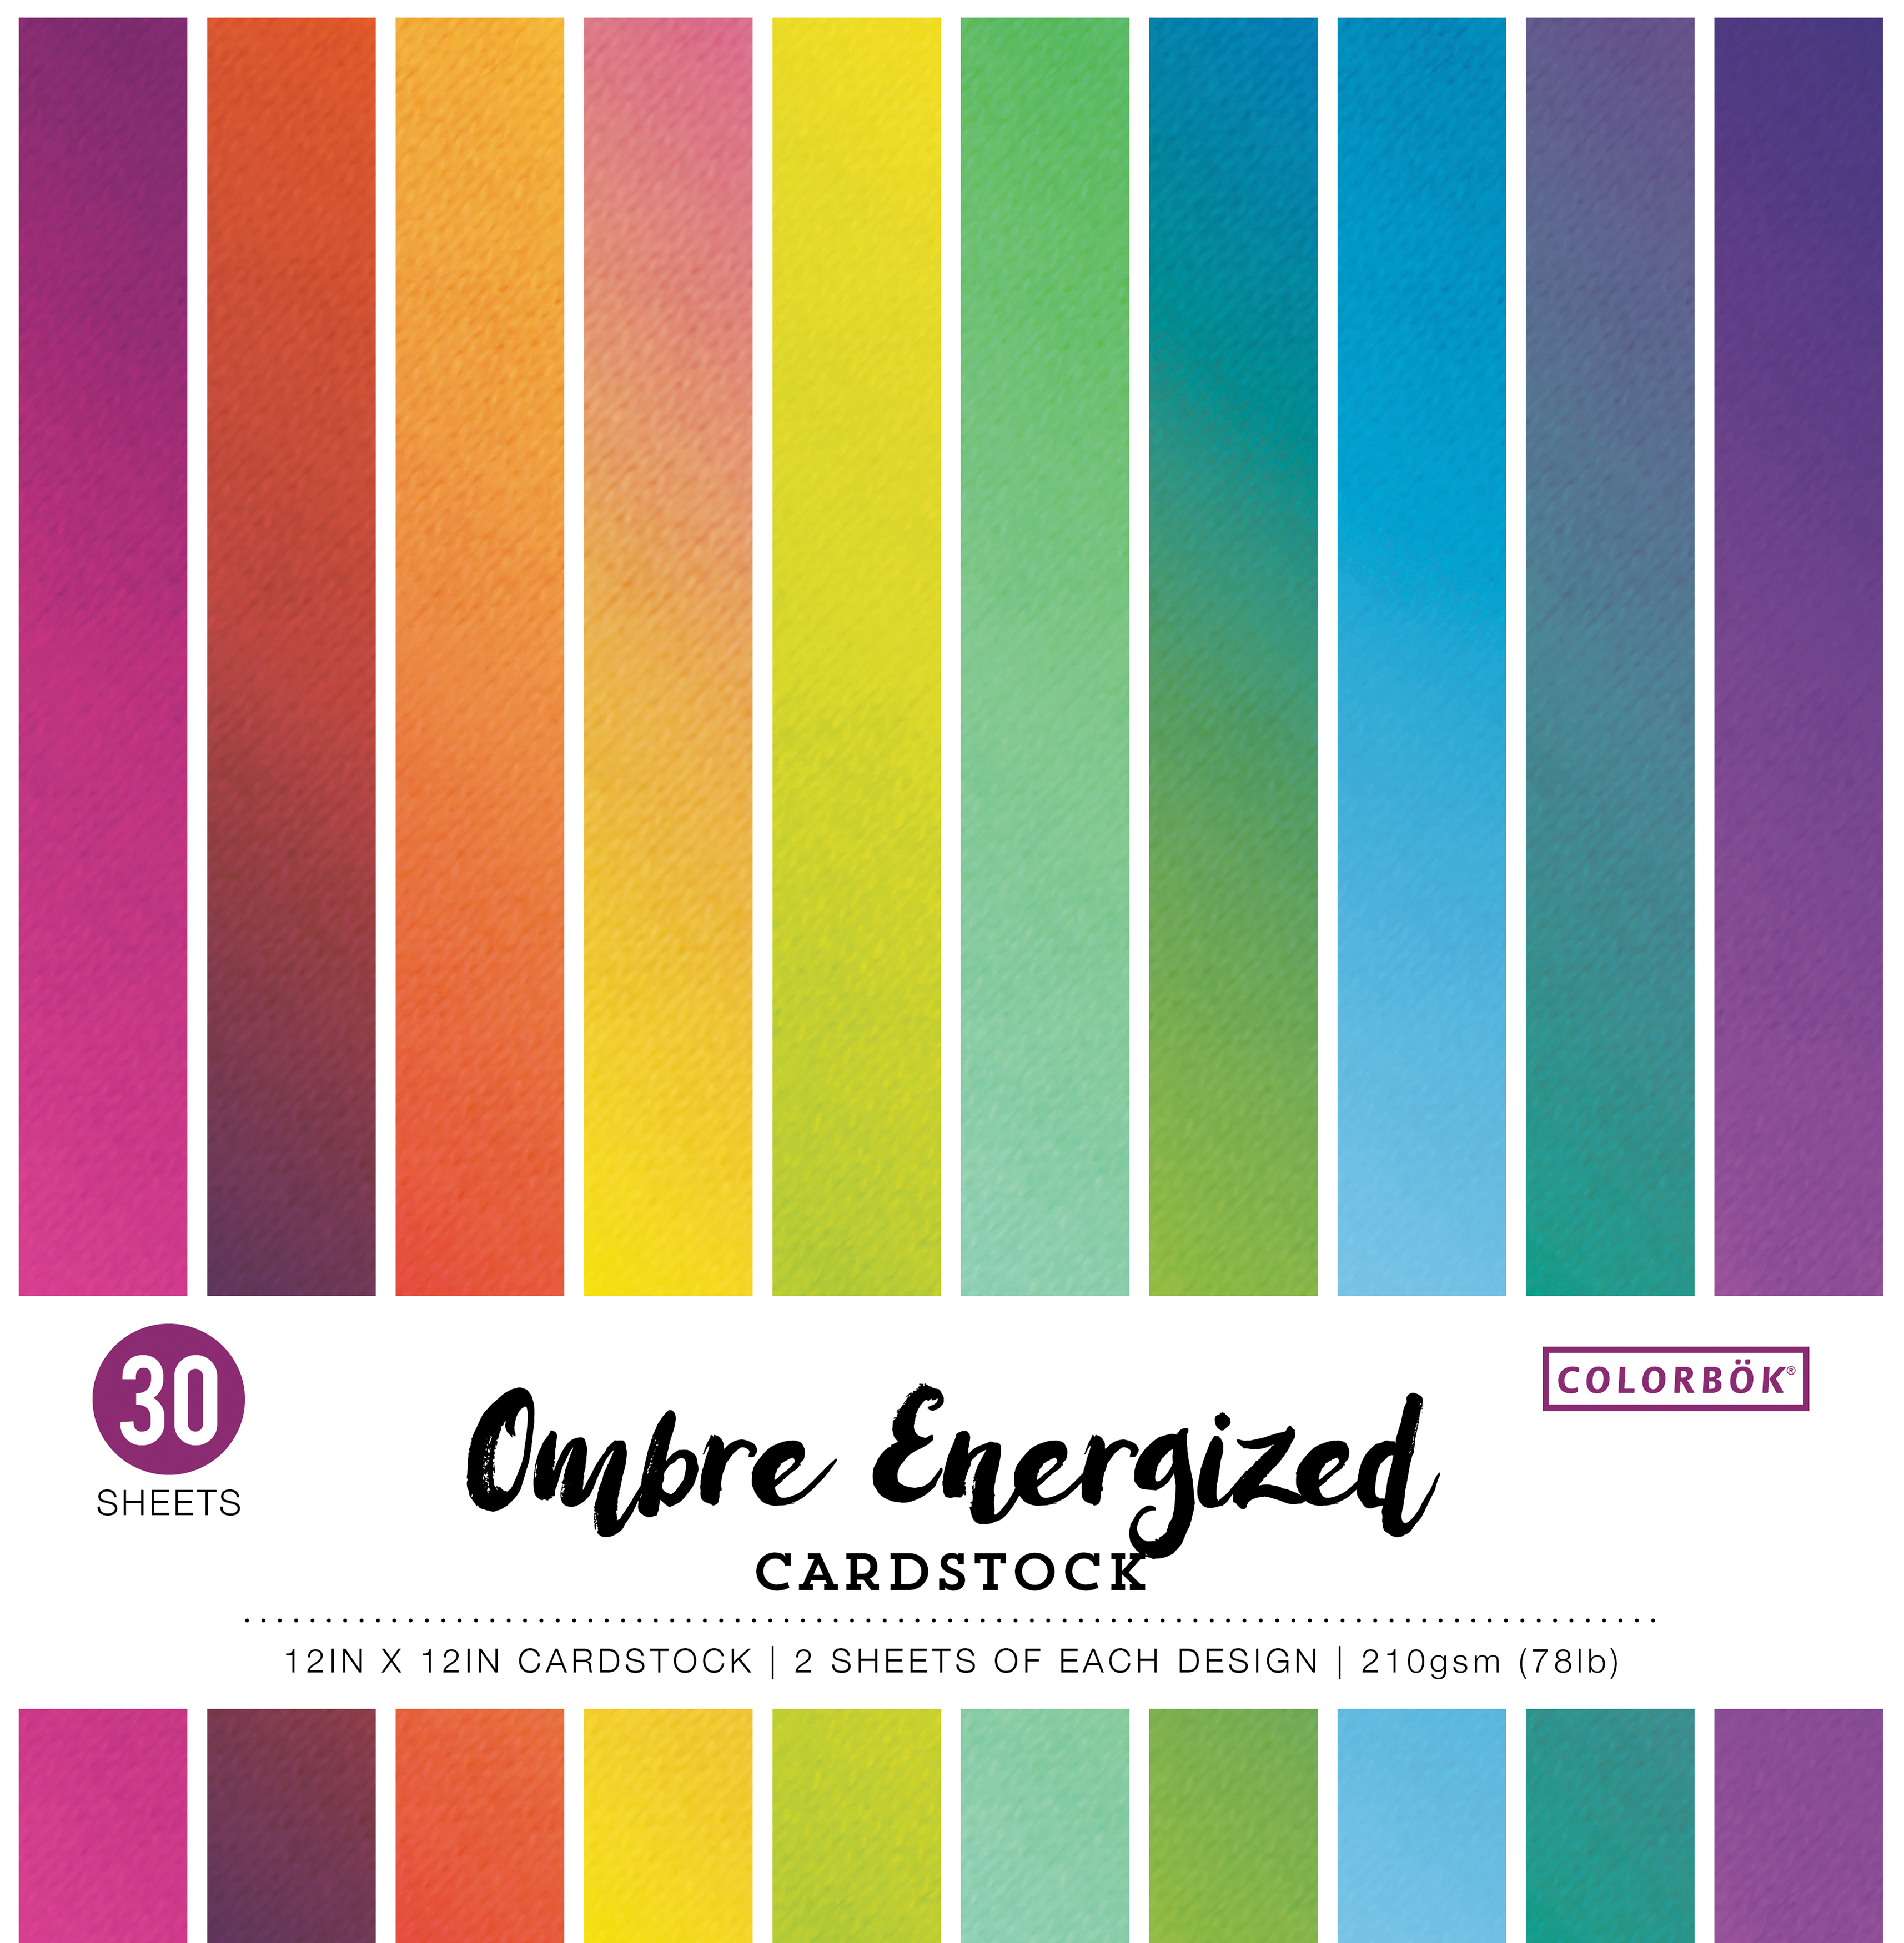 Colorbok 78lb Single-Sided Printed Cardstock 12X12 30/Pkg-Ombre Energized, 15 ...